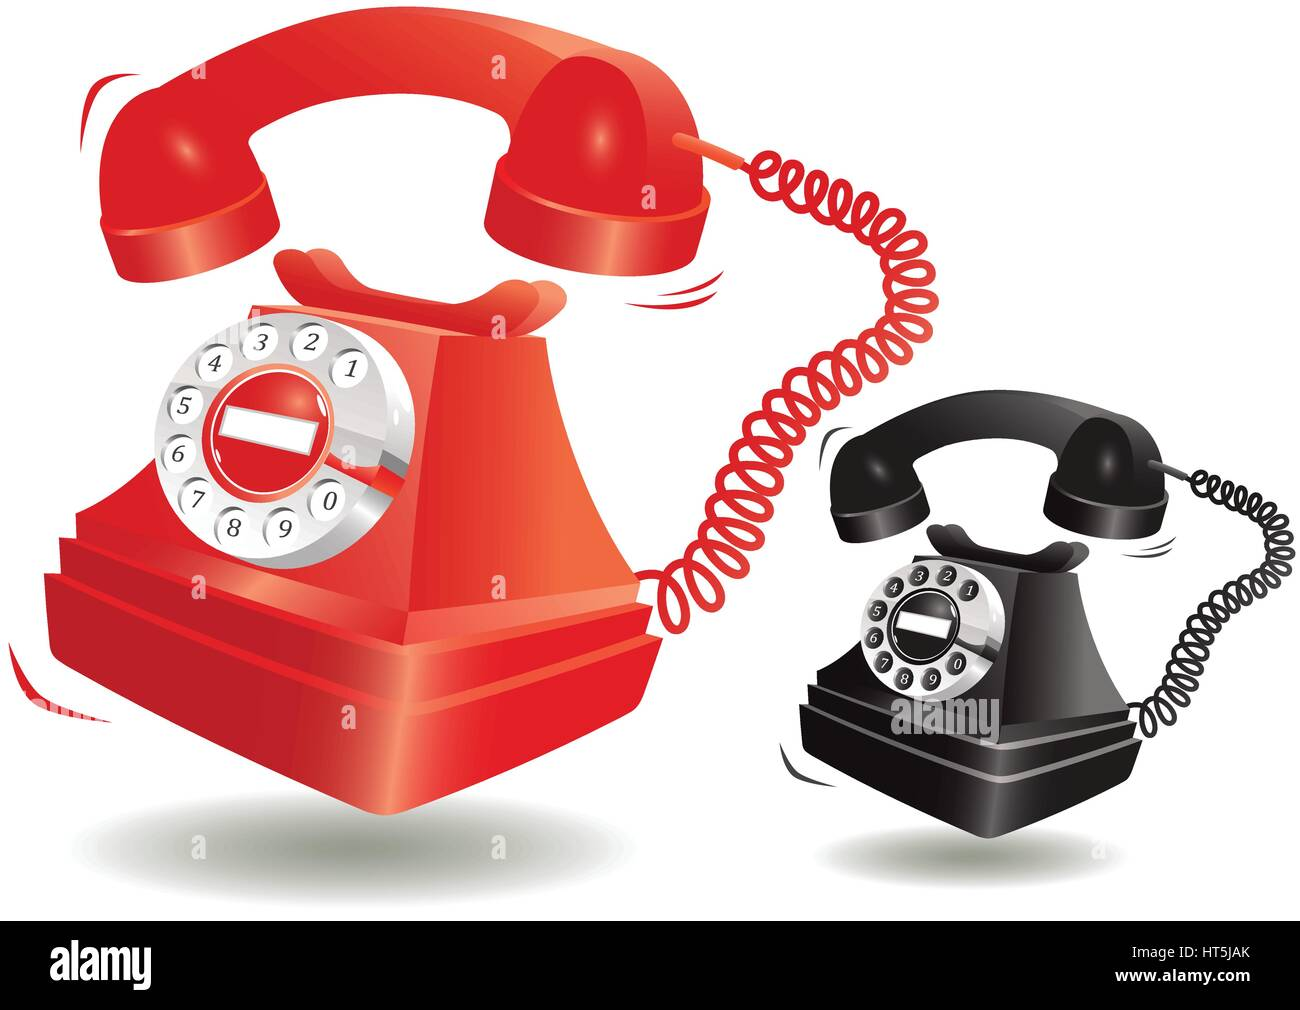 Two illustrations of an old fashioned telephone, one in black and one red. - Stock Image